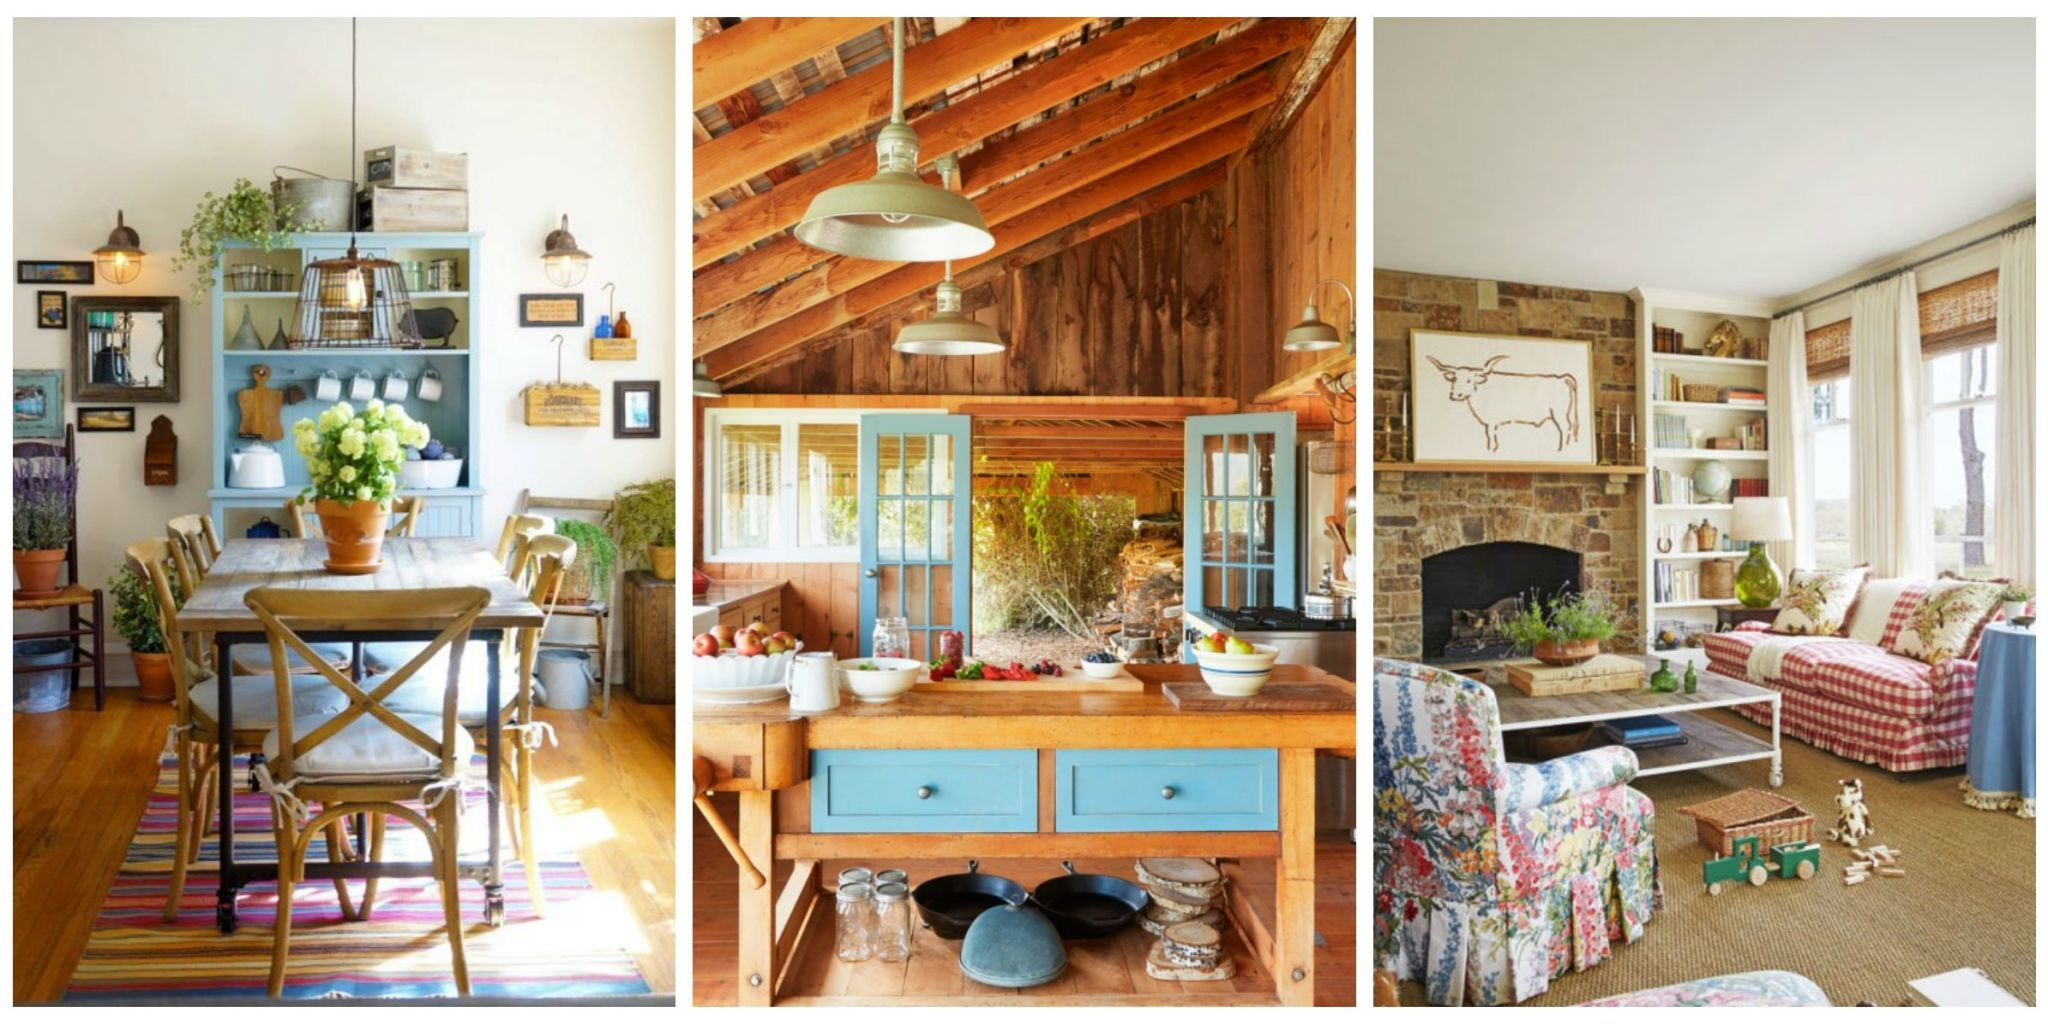 Captivating From Bedrooms To Kitchens, These Simple And Rustic Rooms Inspire.